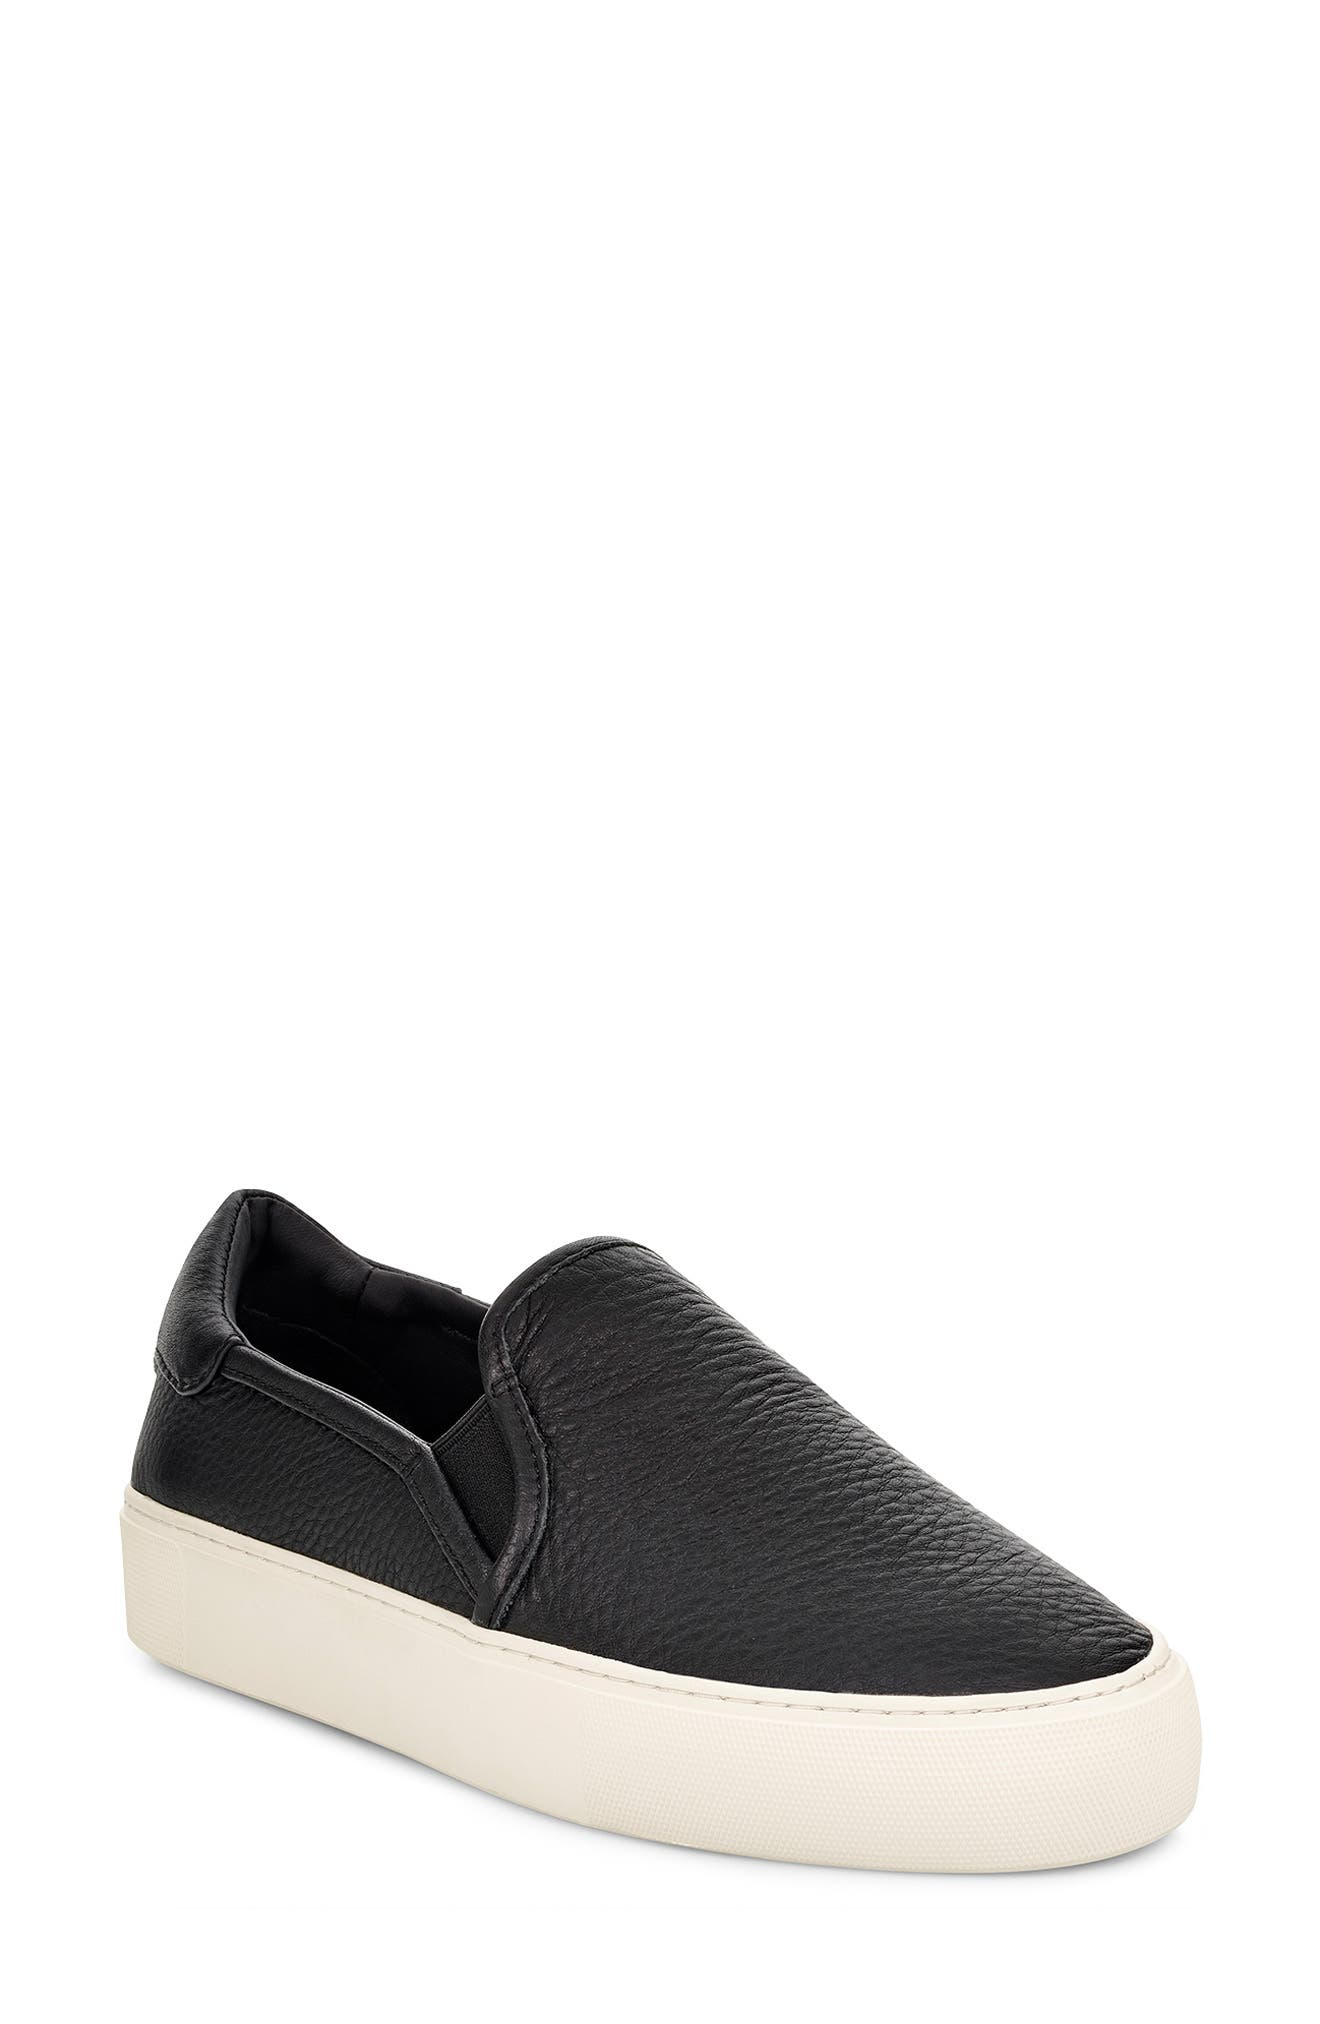 A classic skate-inspired silhouette distinguishes this street-chic slip-on sneaker grounded by a platform rubber sole. Style Name: UGG Jass Slip-On Sneaker (Women). Style Number: 5829549 3. Available in stores.